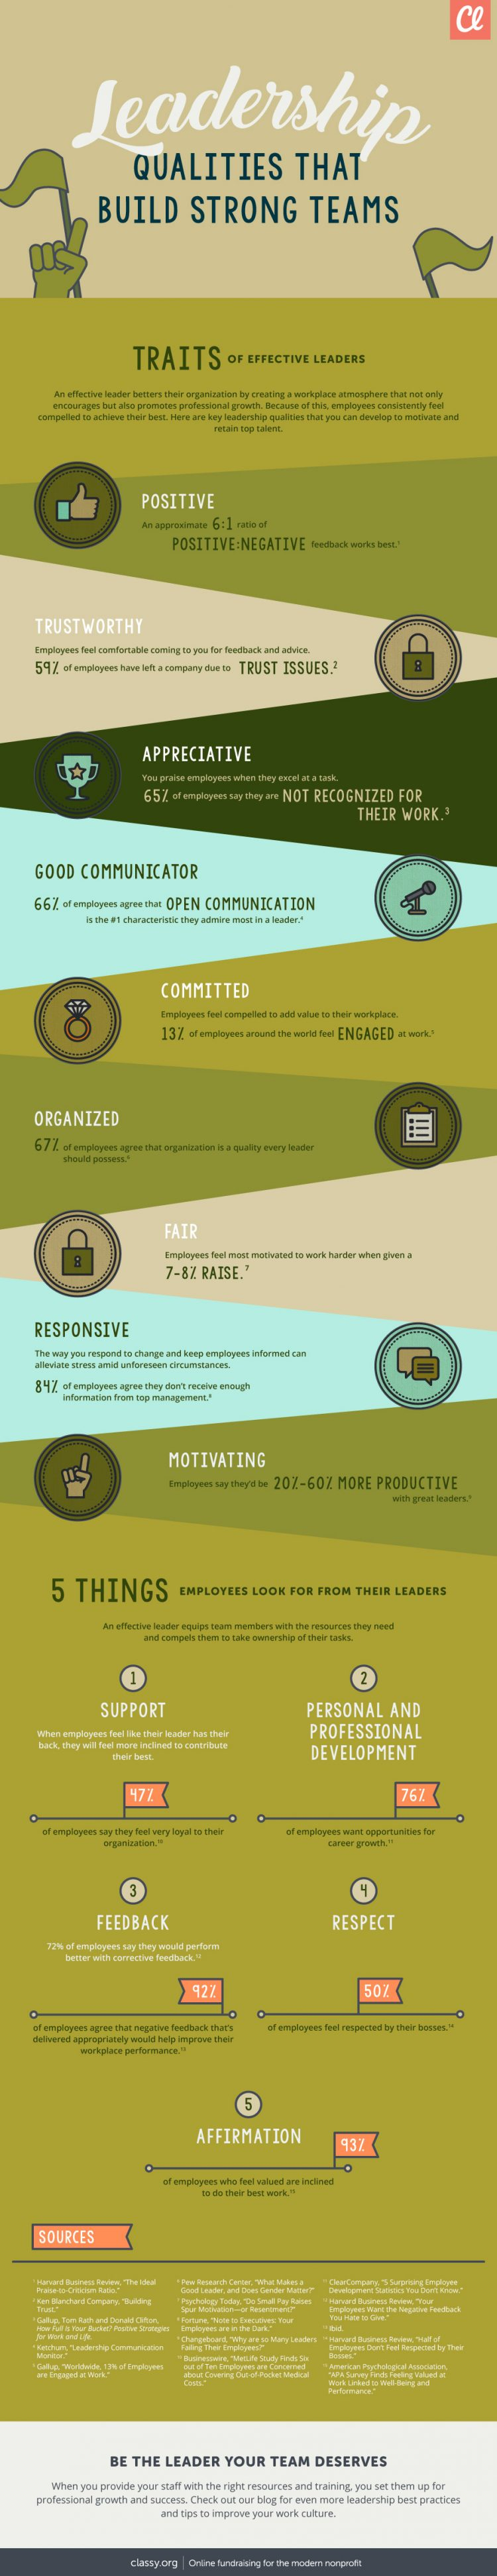 Infographic: Leadership Qualities That Build Strong Teams